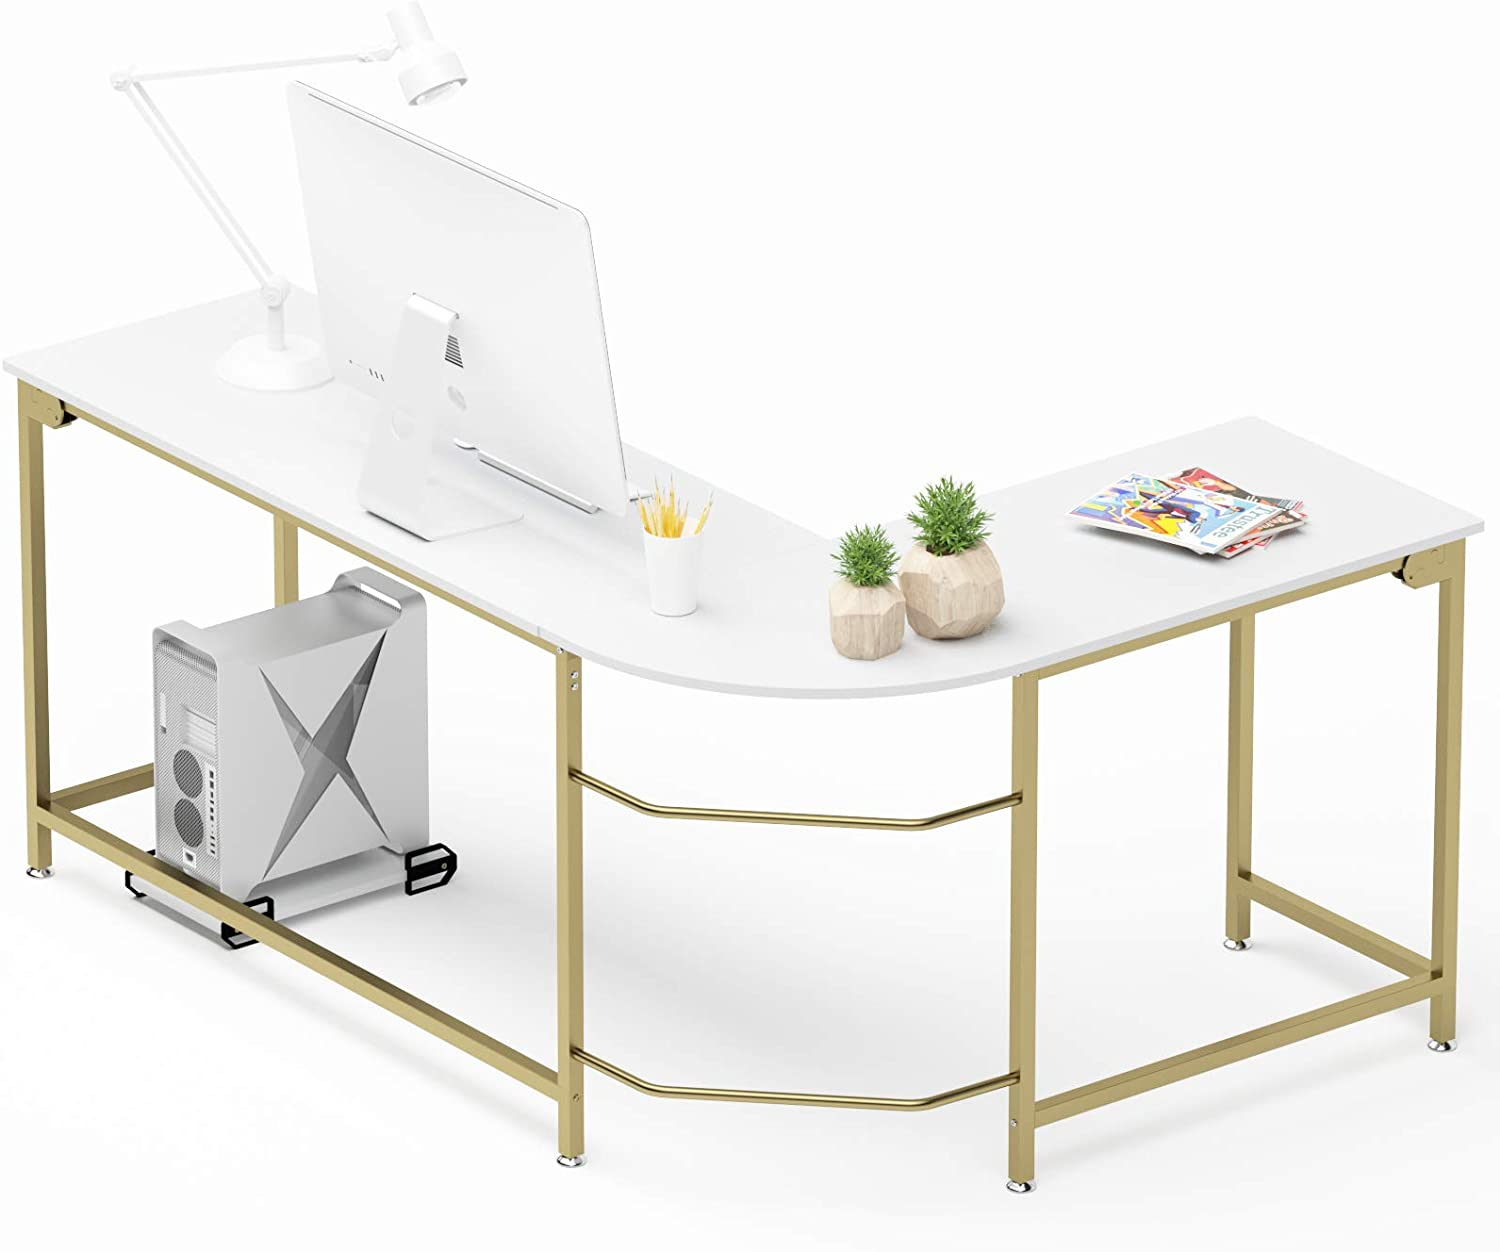 Hago Modern L-Shaped Desk Corner Computer Desk Home Office Study Workstation Wood & Steel PC Laptop Gaming Table(Small, White)